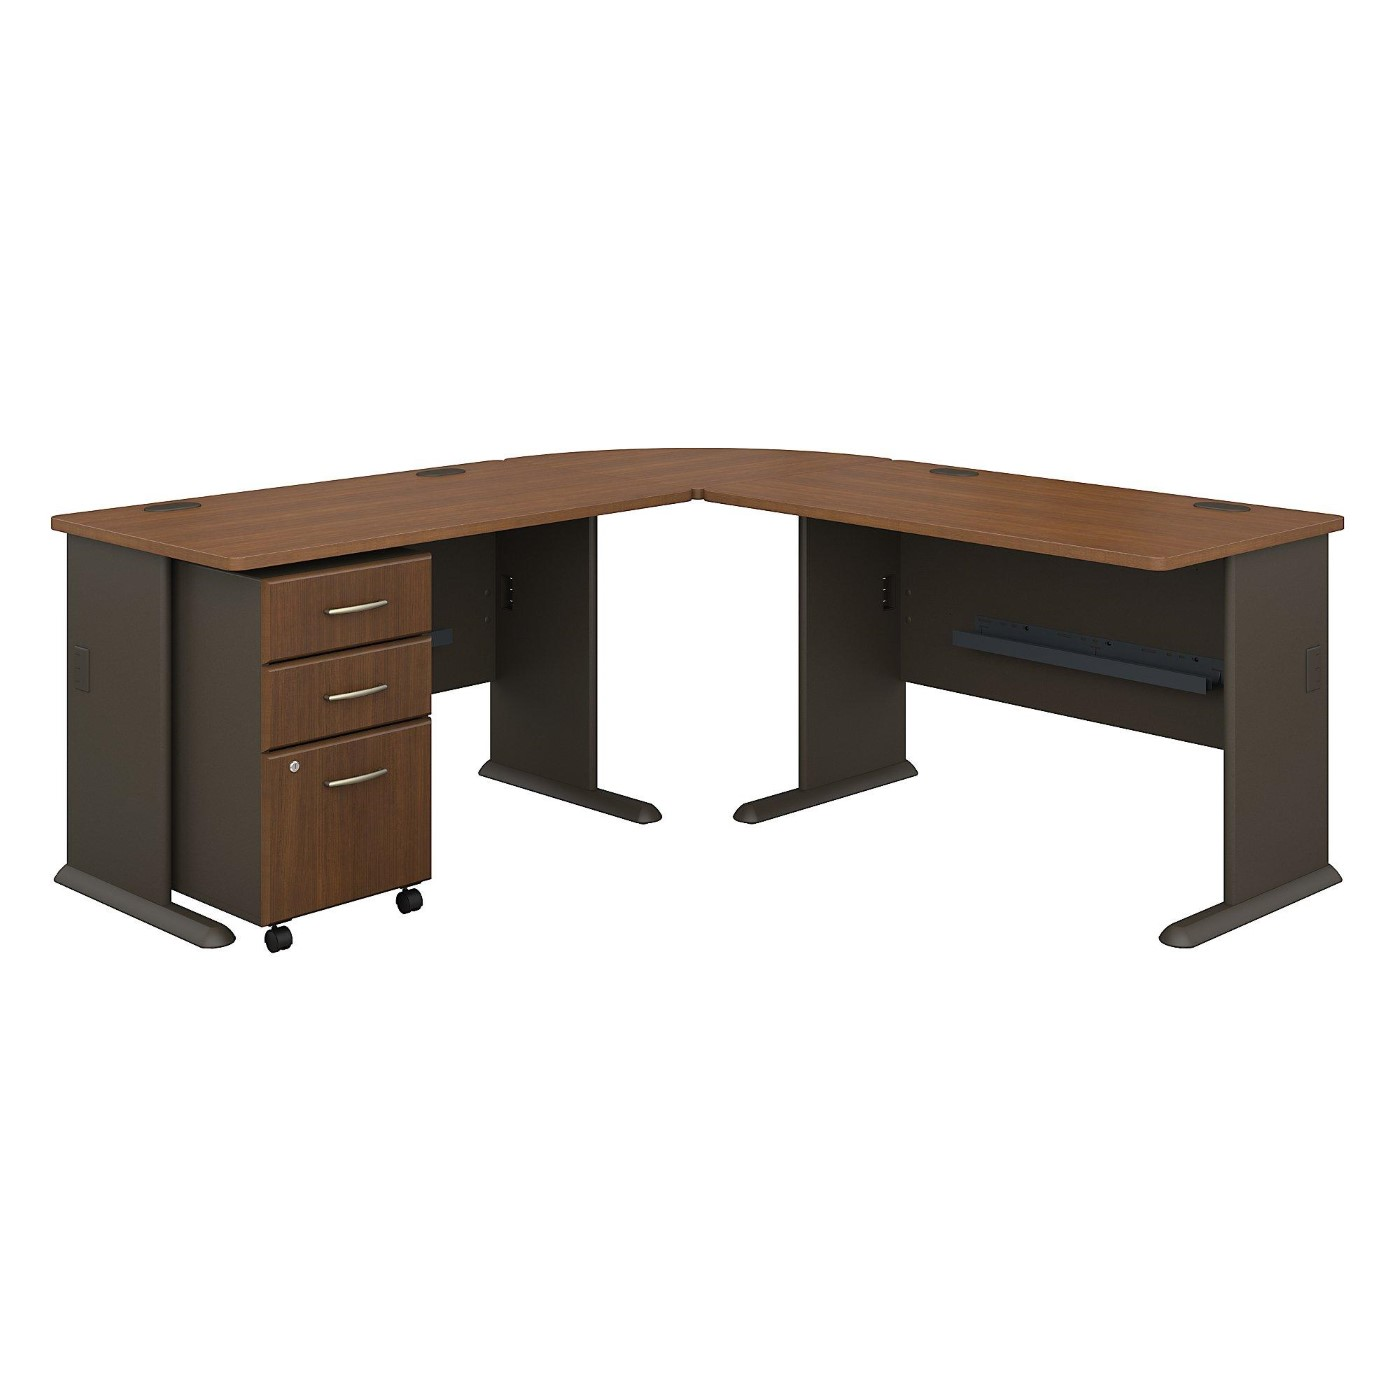 <font color=#c60><b>BUSH BUSINESS FURNITURE SERIES A 75W X 75D L SHAPED DESK WITH MOBILE FILE CABINET. FREE SHIPPING</font></b>